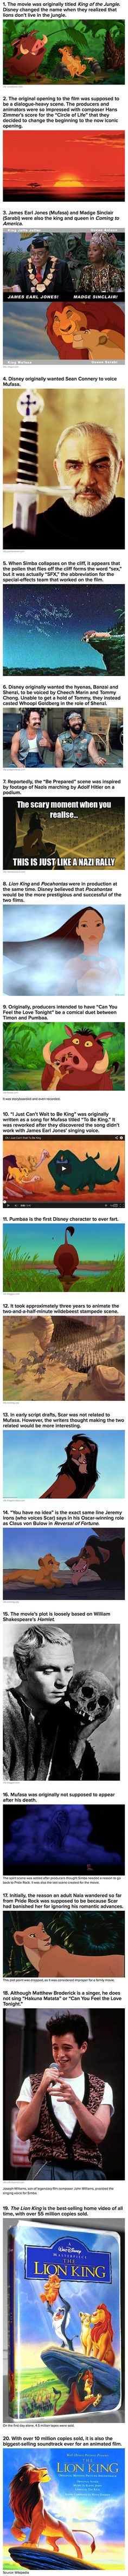 Facts about one of the greatest movies of all time, The Lion King